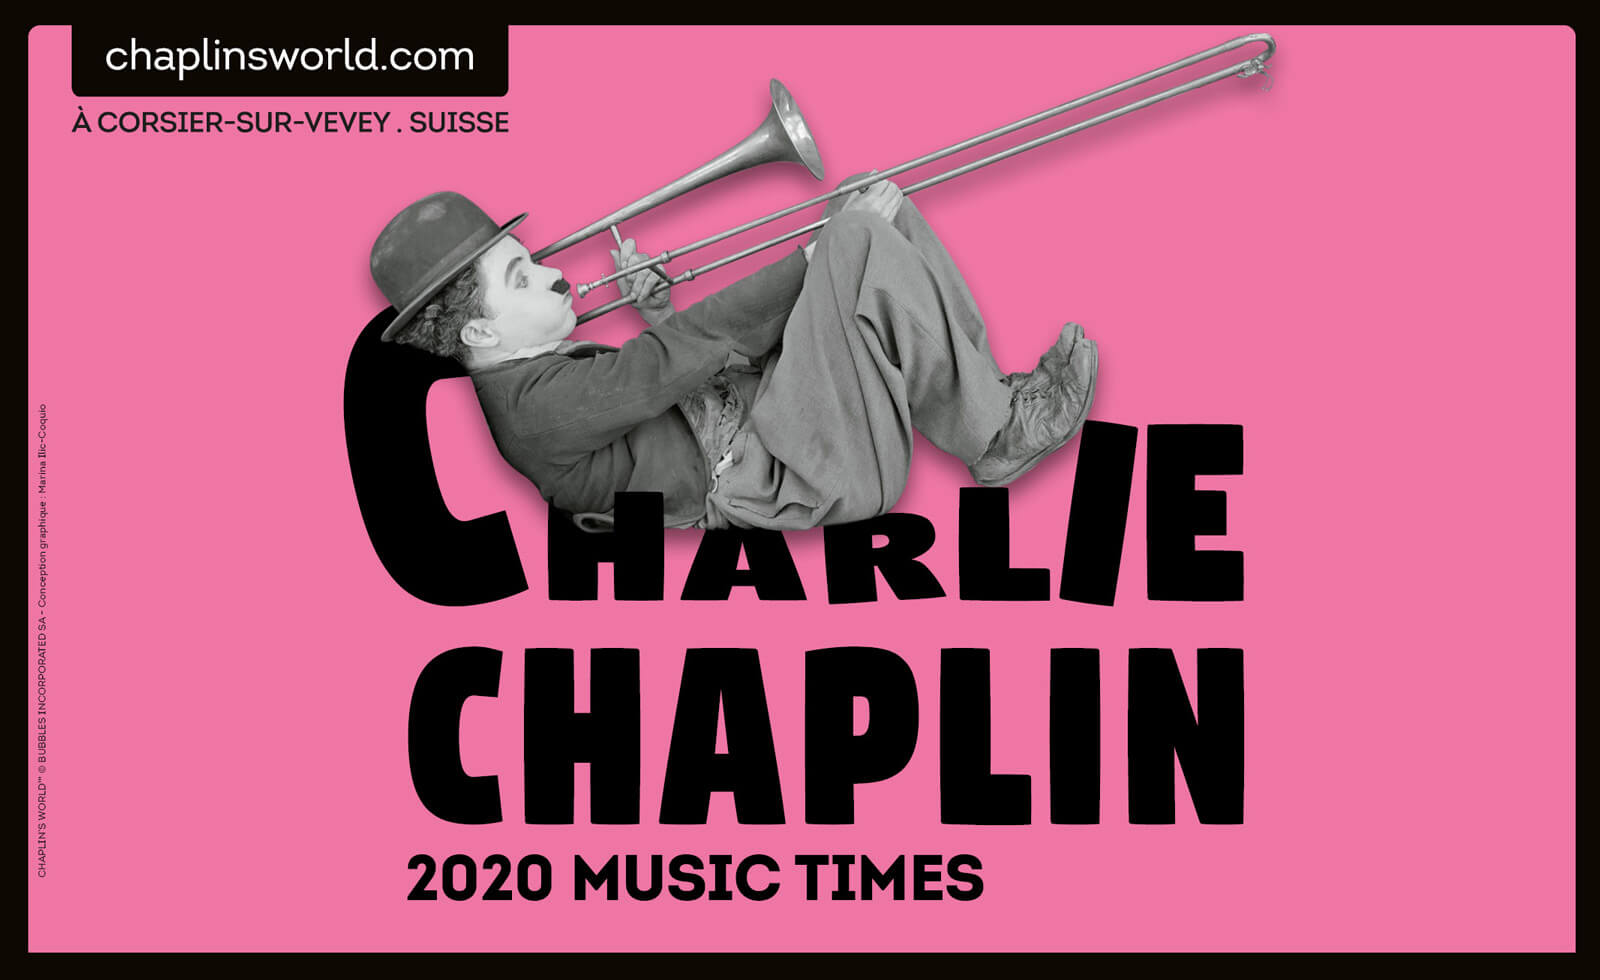 The Sound of Charlie Chaplin at Chaplin's World in Vevey